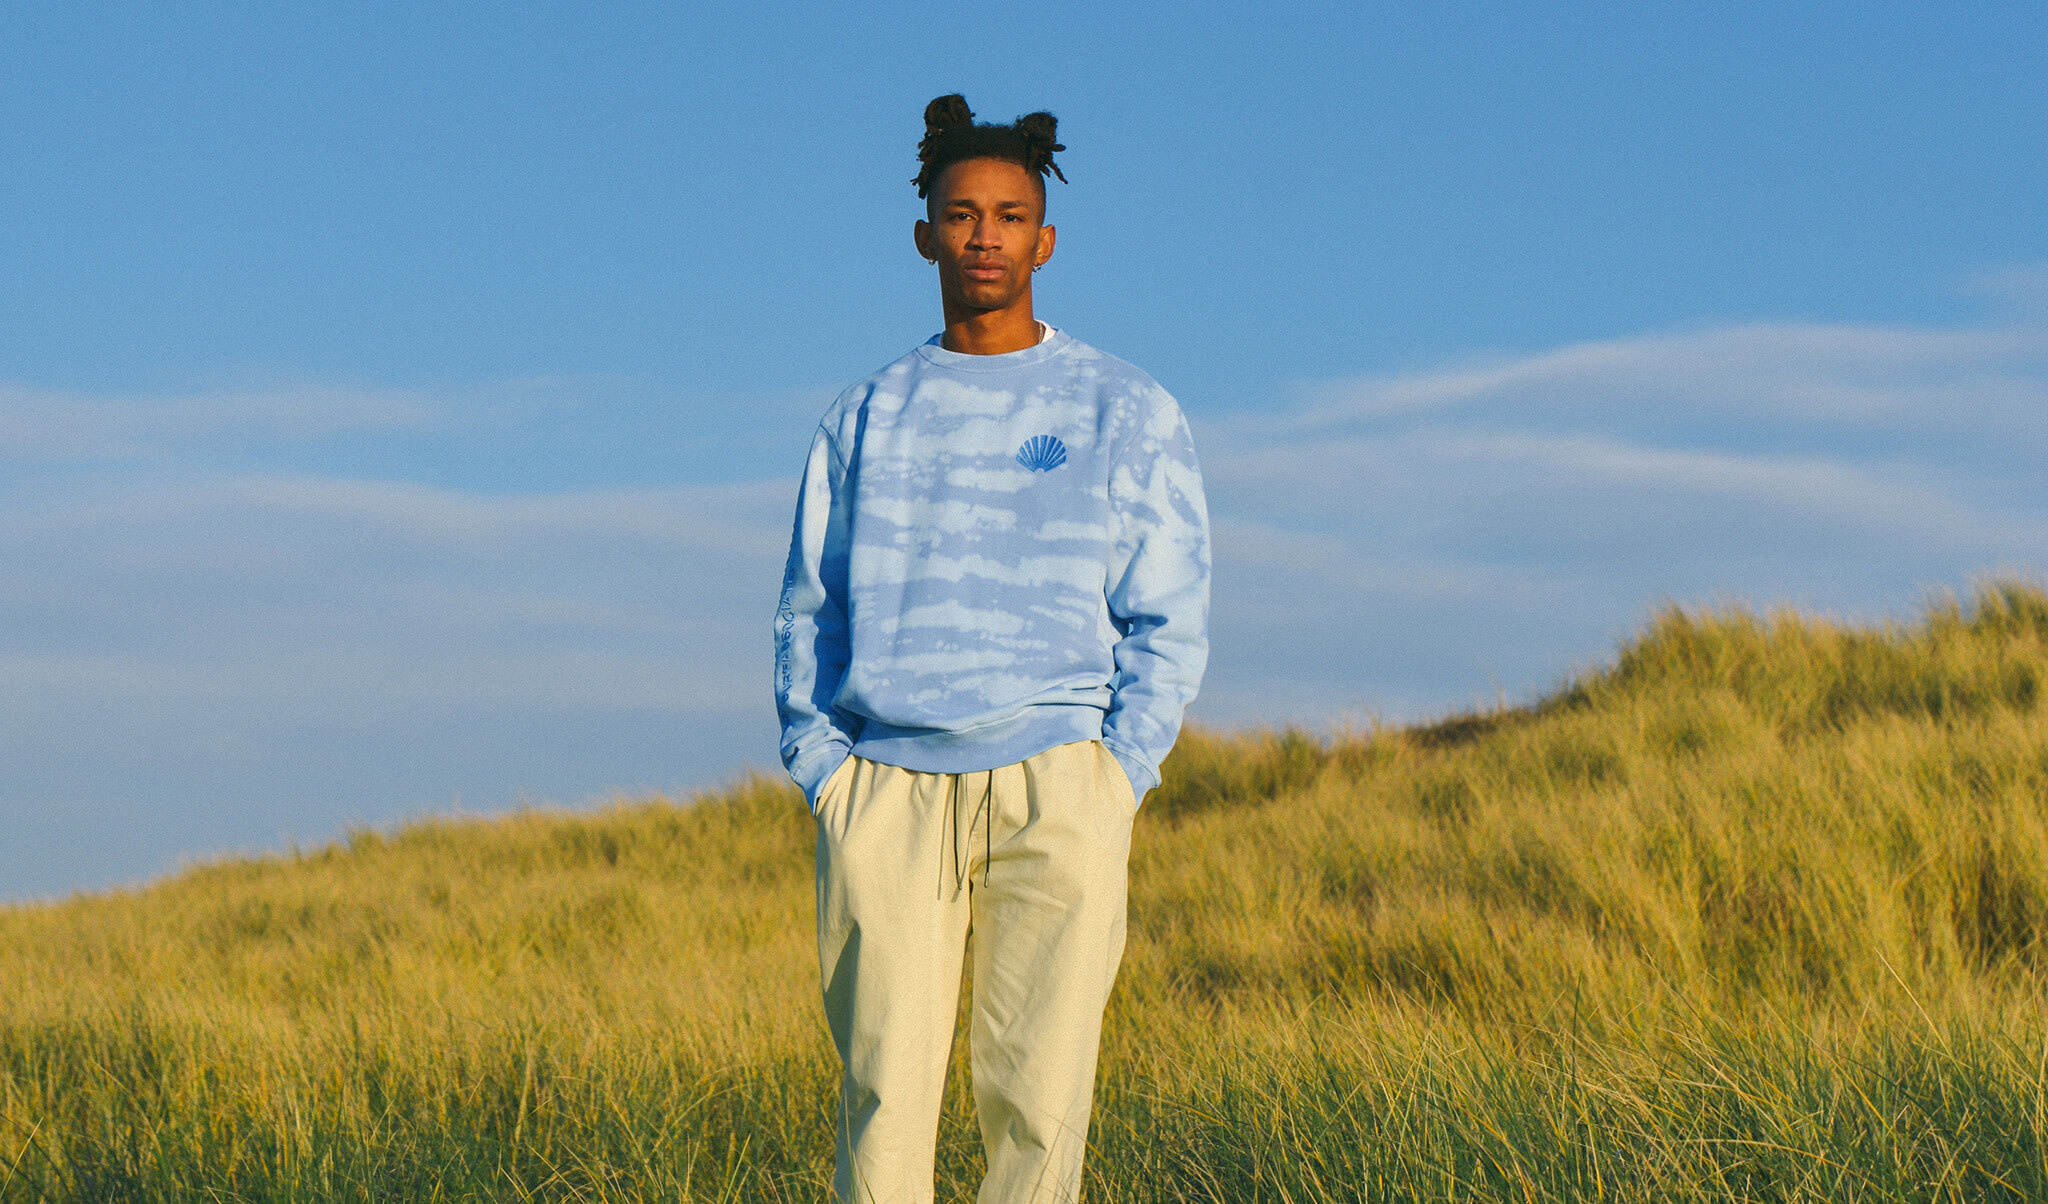 New Amsterdam Surf Association - SS21 Black Saturday PRE'21 collection